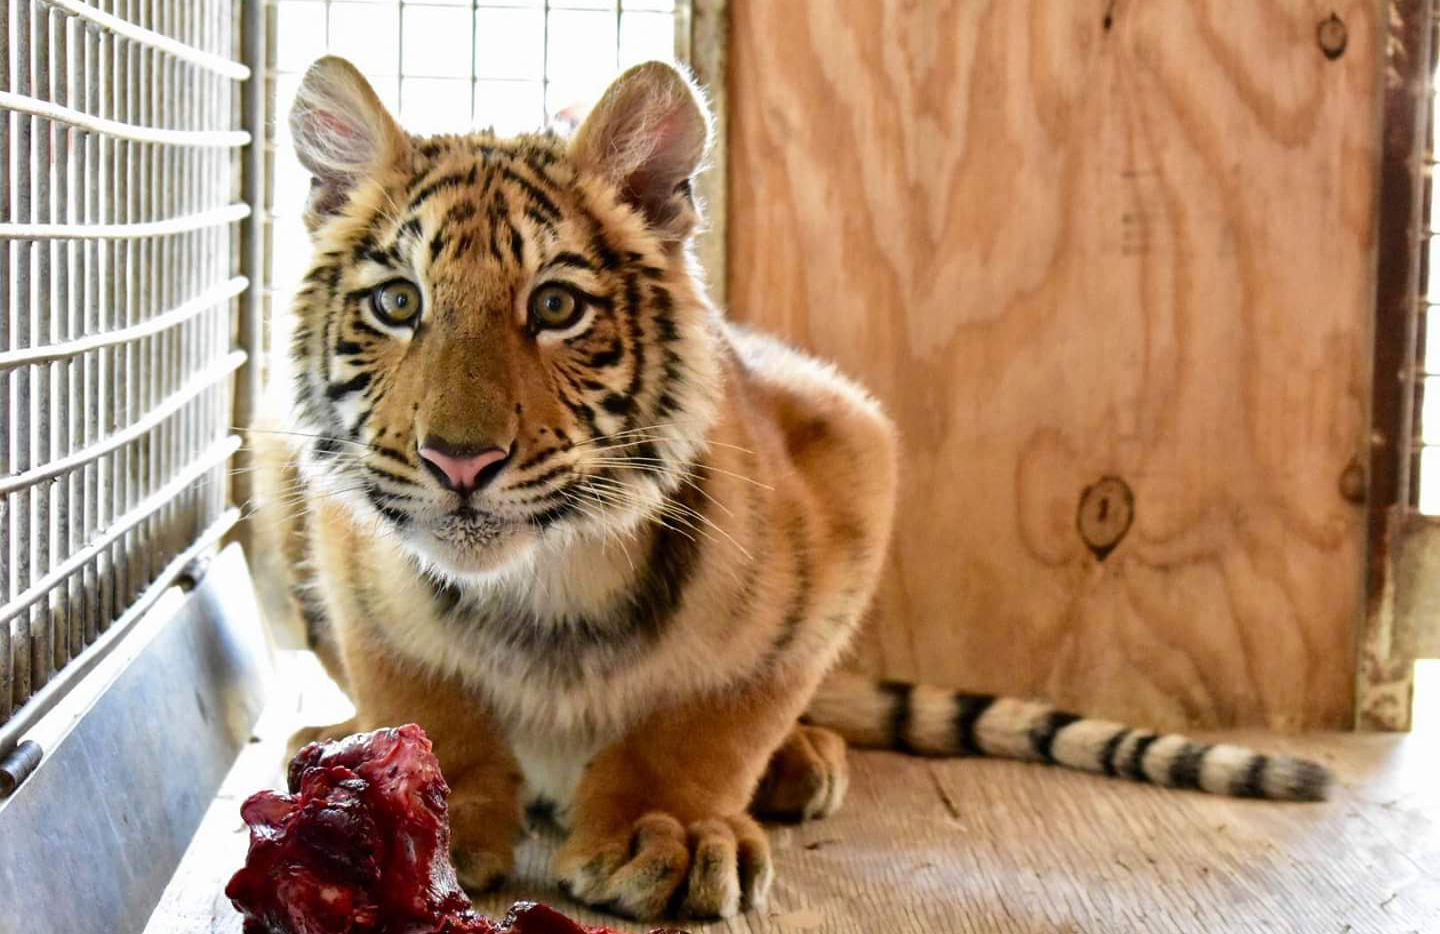 A Wylie animal sanctuary took in a tiger cub this week that had been found in a duffel bag on the U.S.-Mexico border.